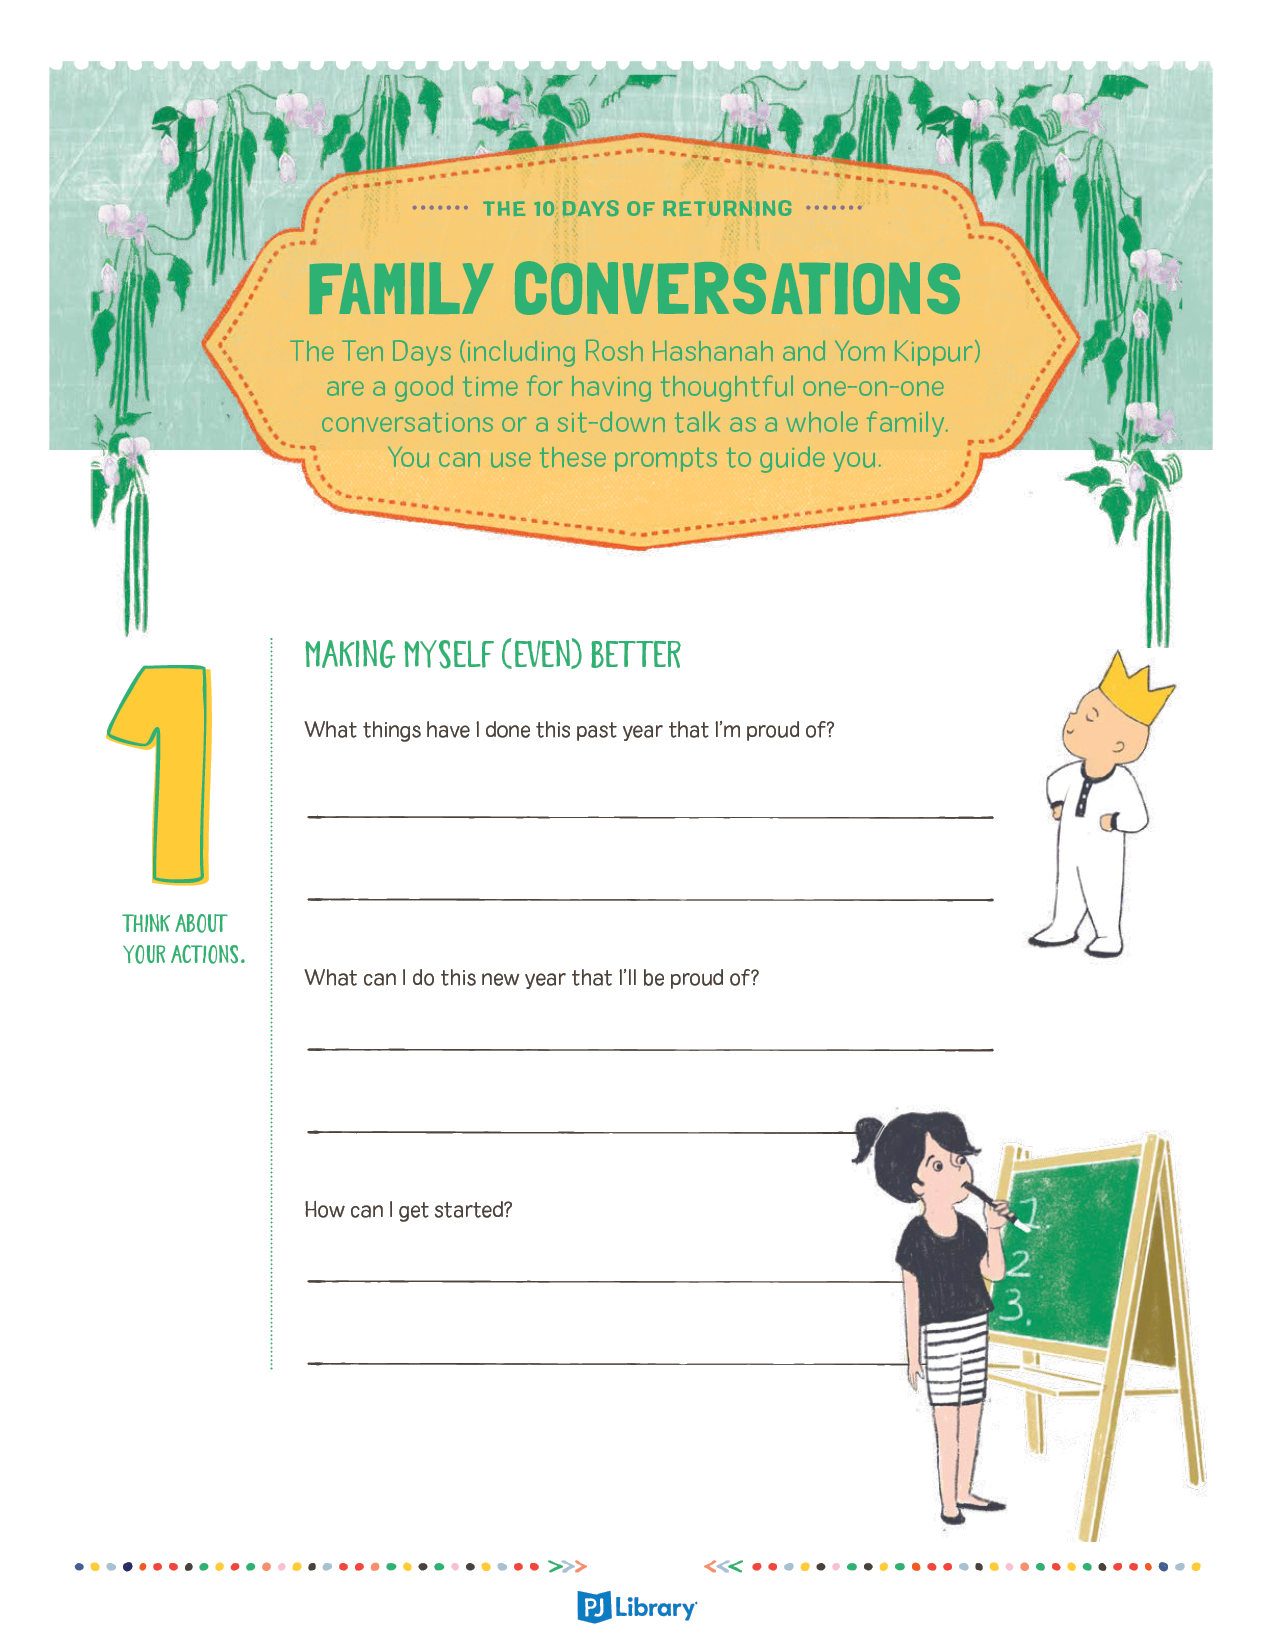 Family Conversations for the High Holidays 1